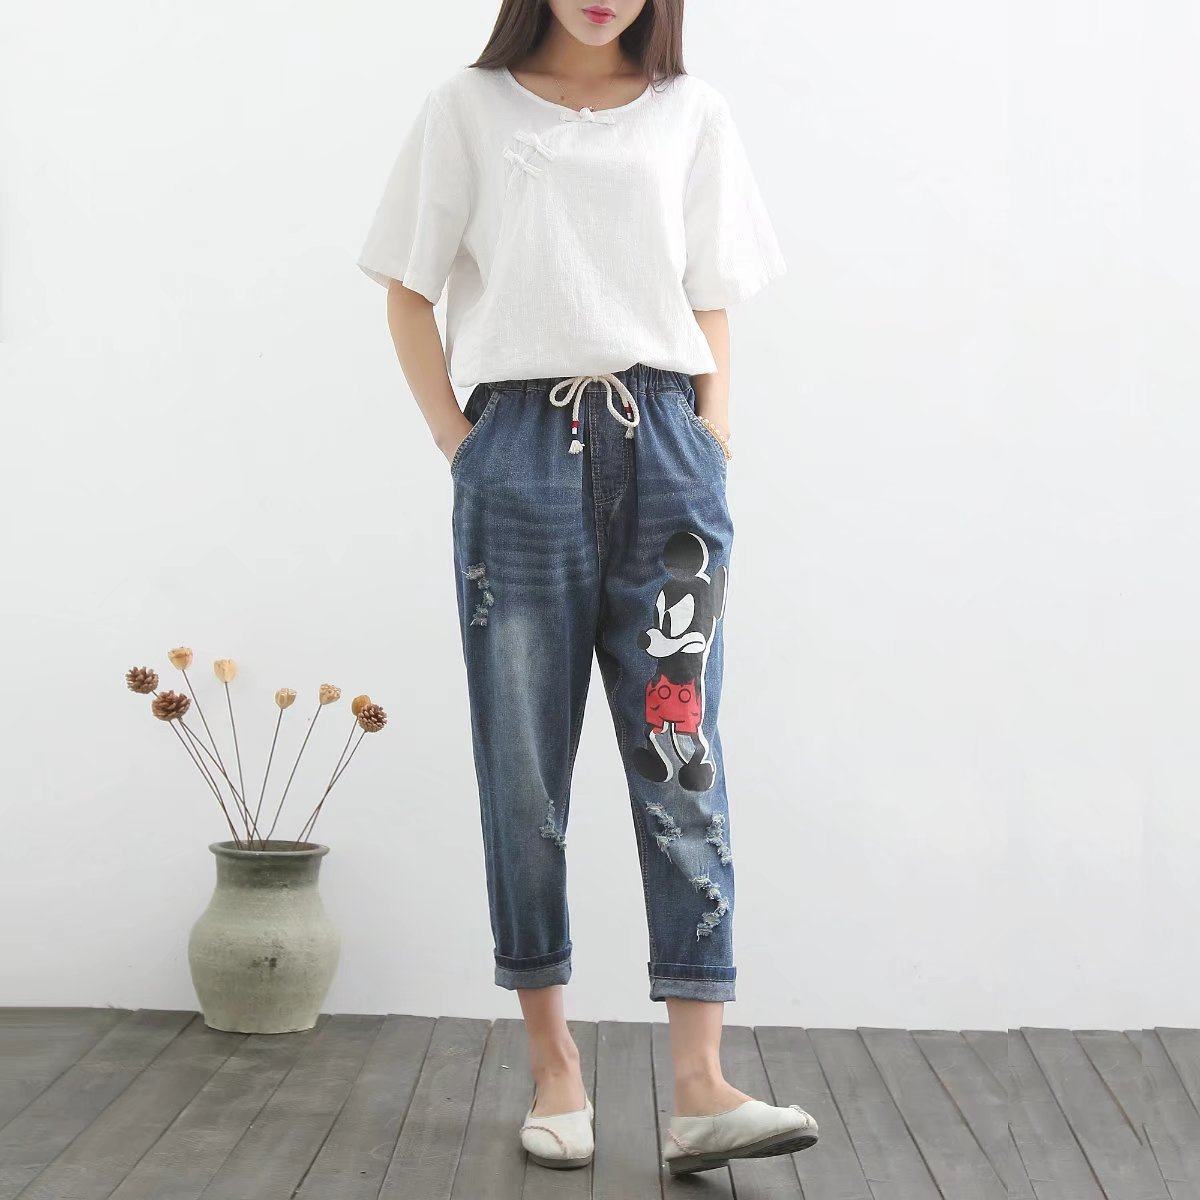 Women Spring Summer Loose Large size Jeans 2017 High Quality Slim type Denim Trousers Fashion Female